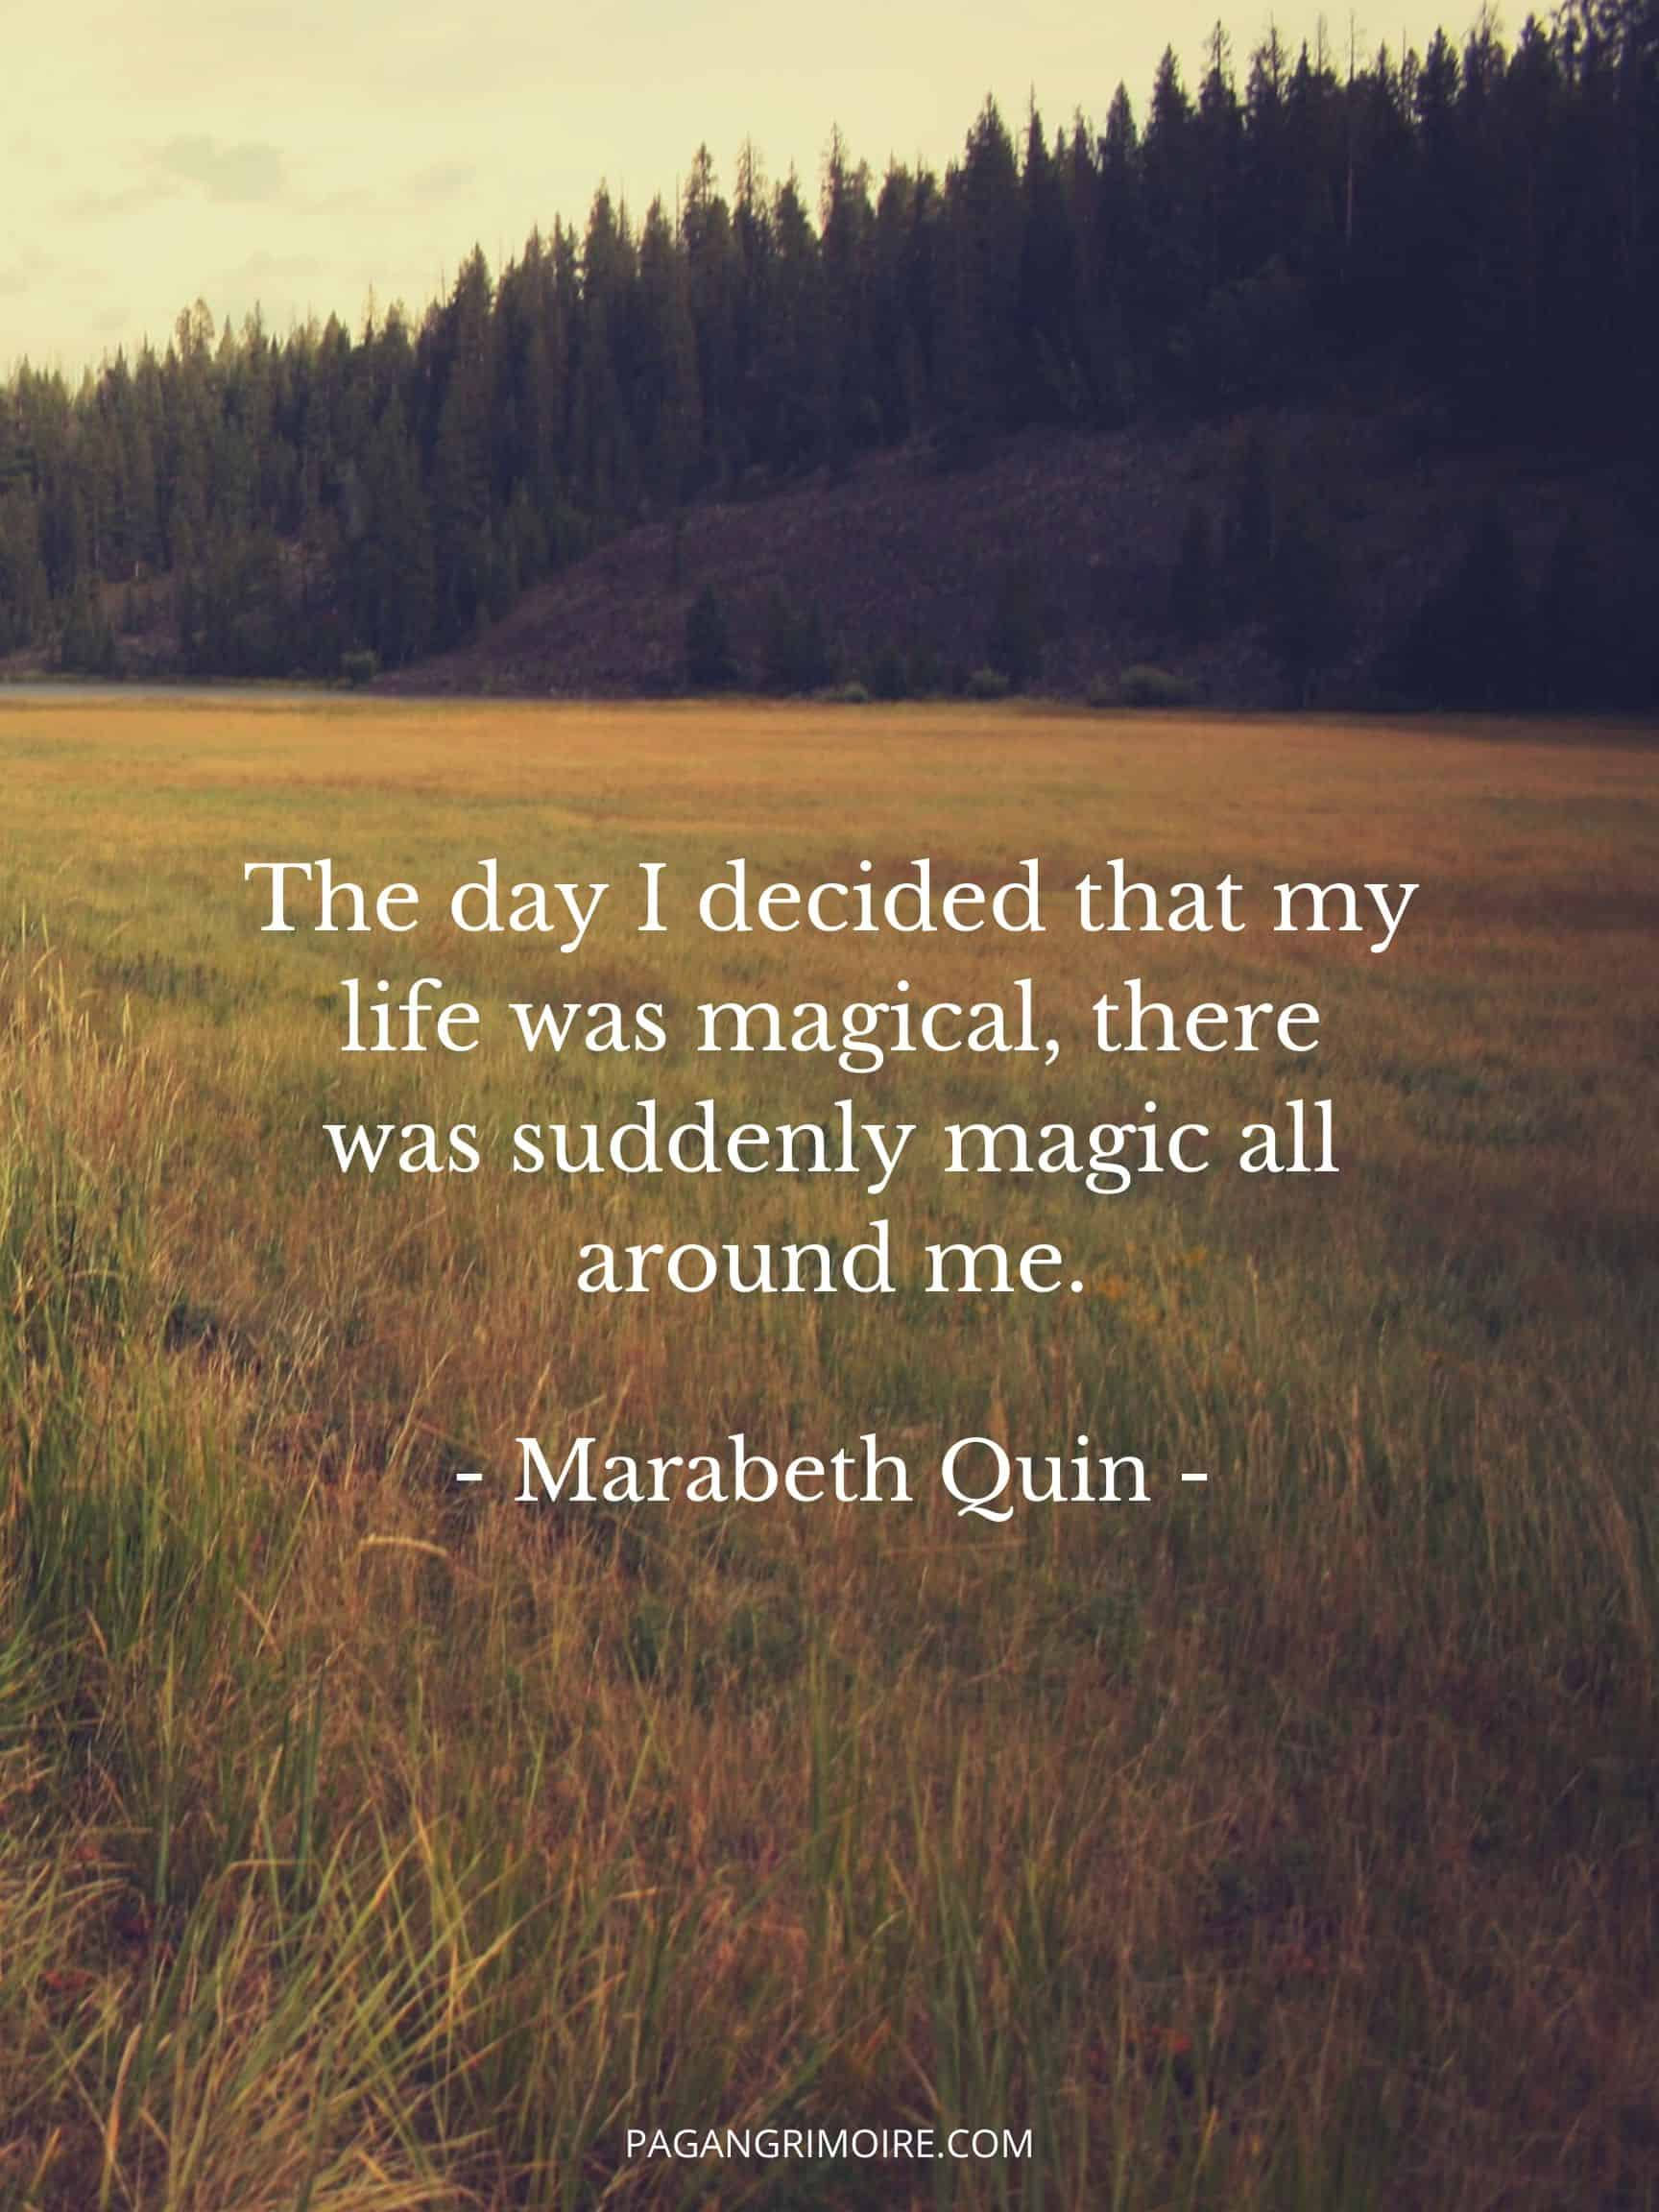 Witch Quotes - Day I Decided My Life Was Magical